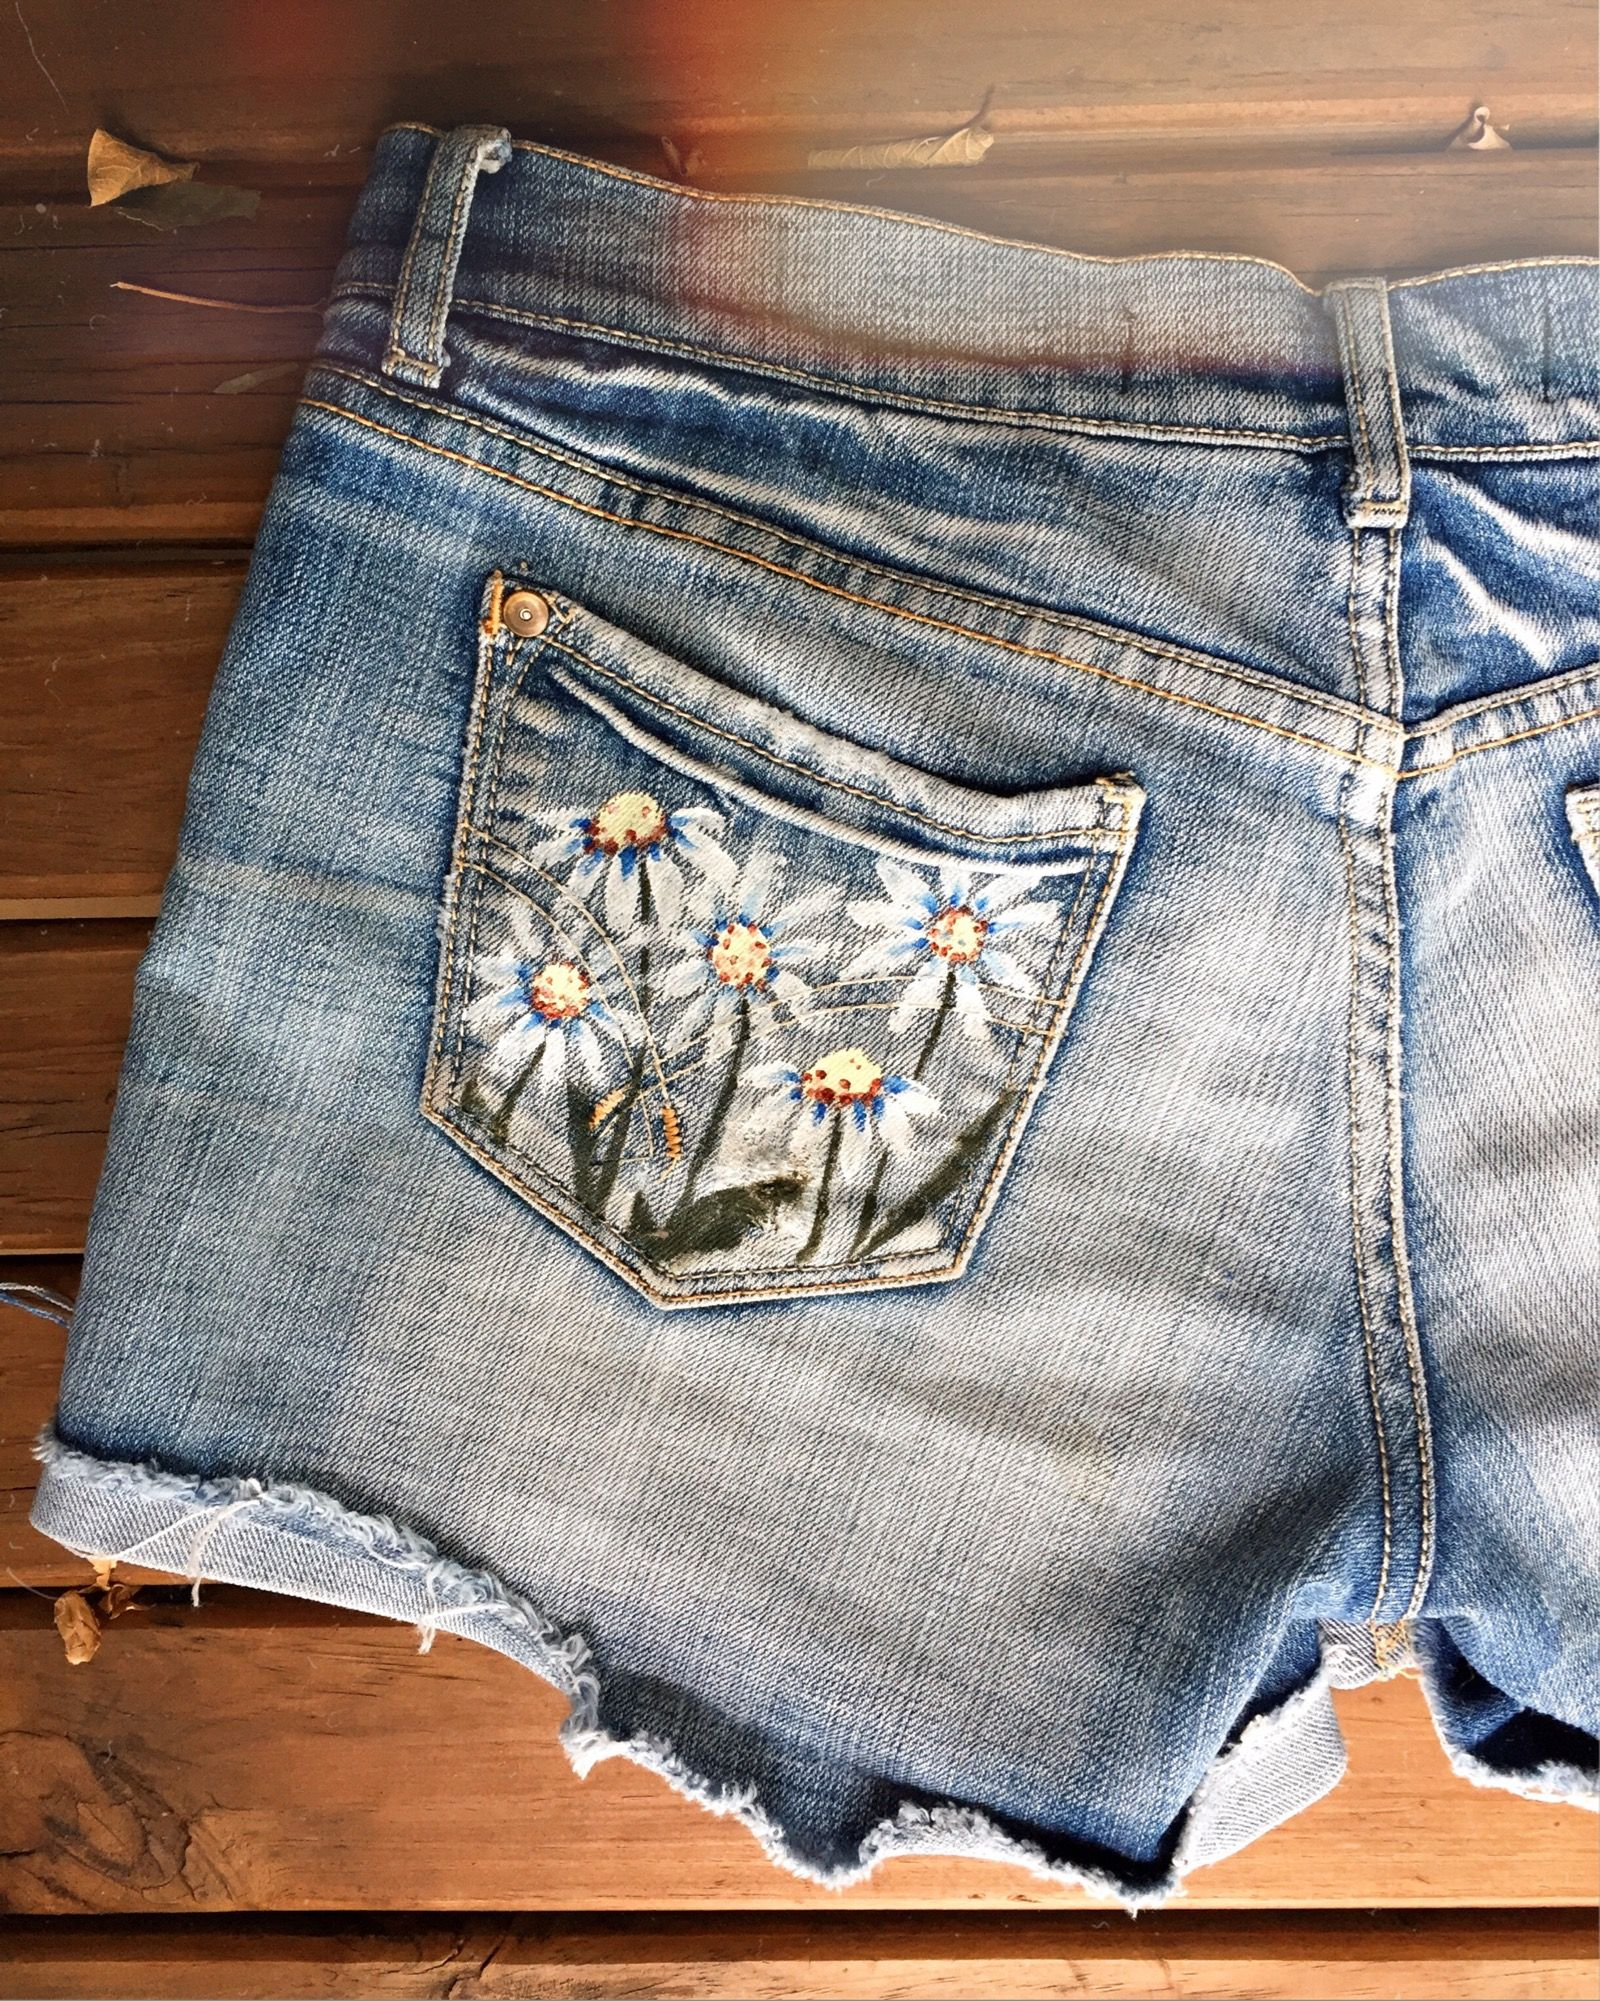 5a499e8b07868e no flowers (part 3) // hand-painted thrifted denim shorts by  @peppermintlines